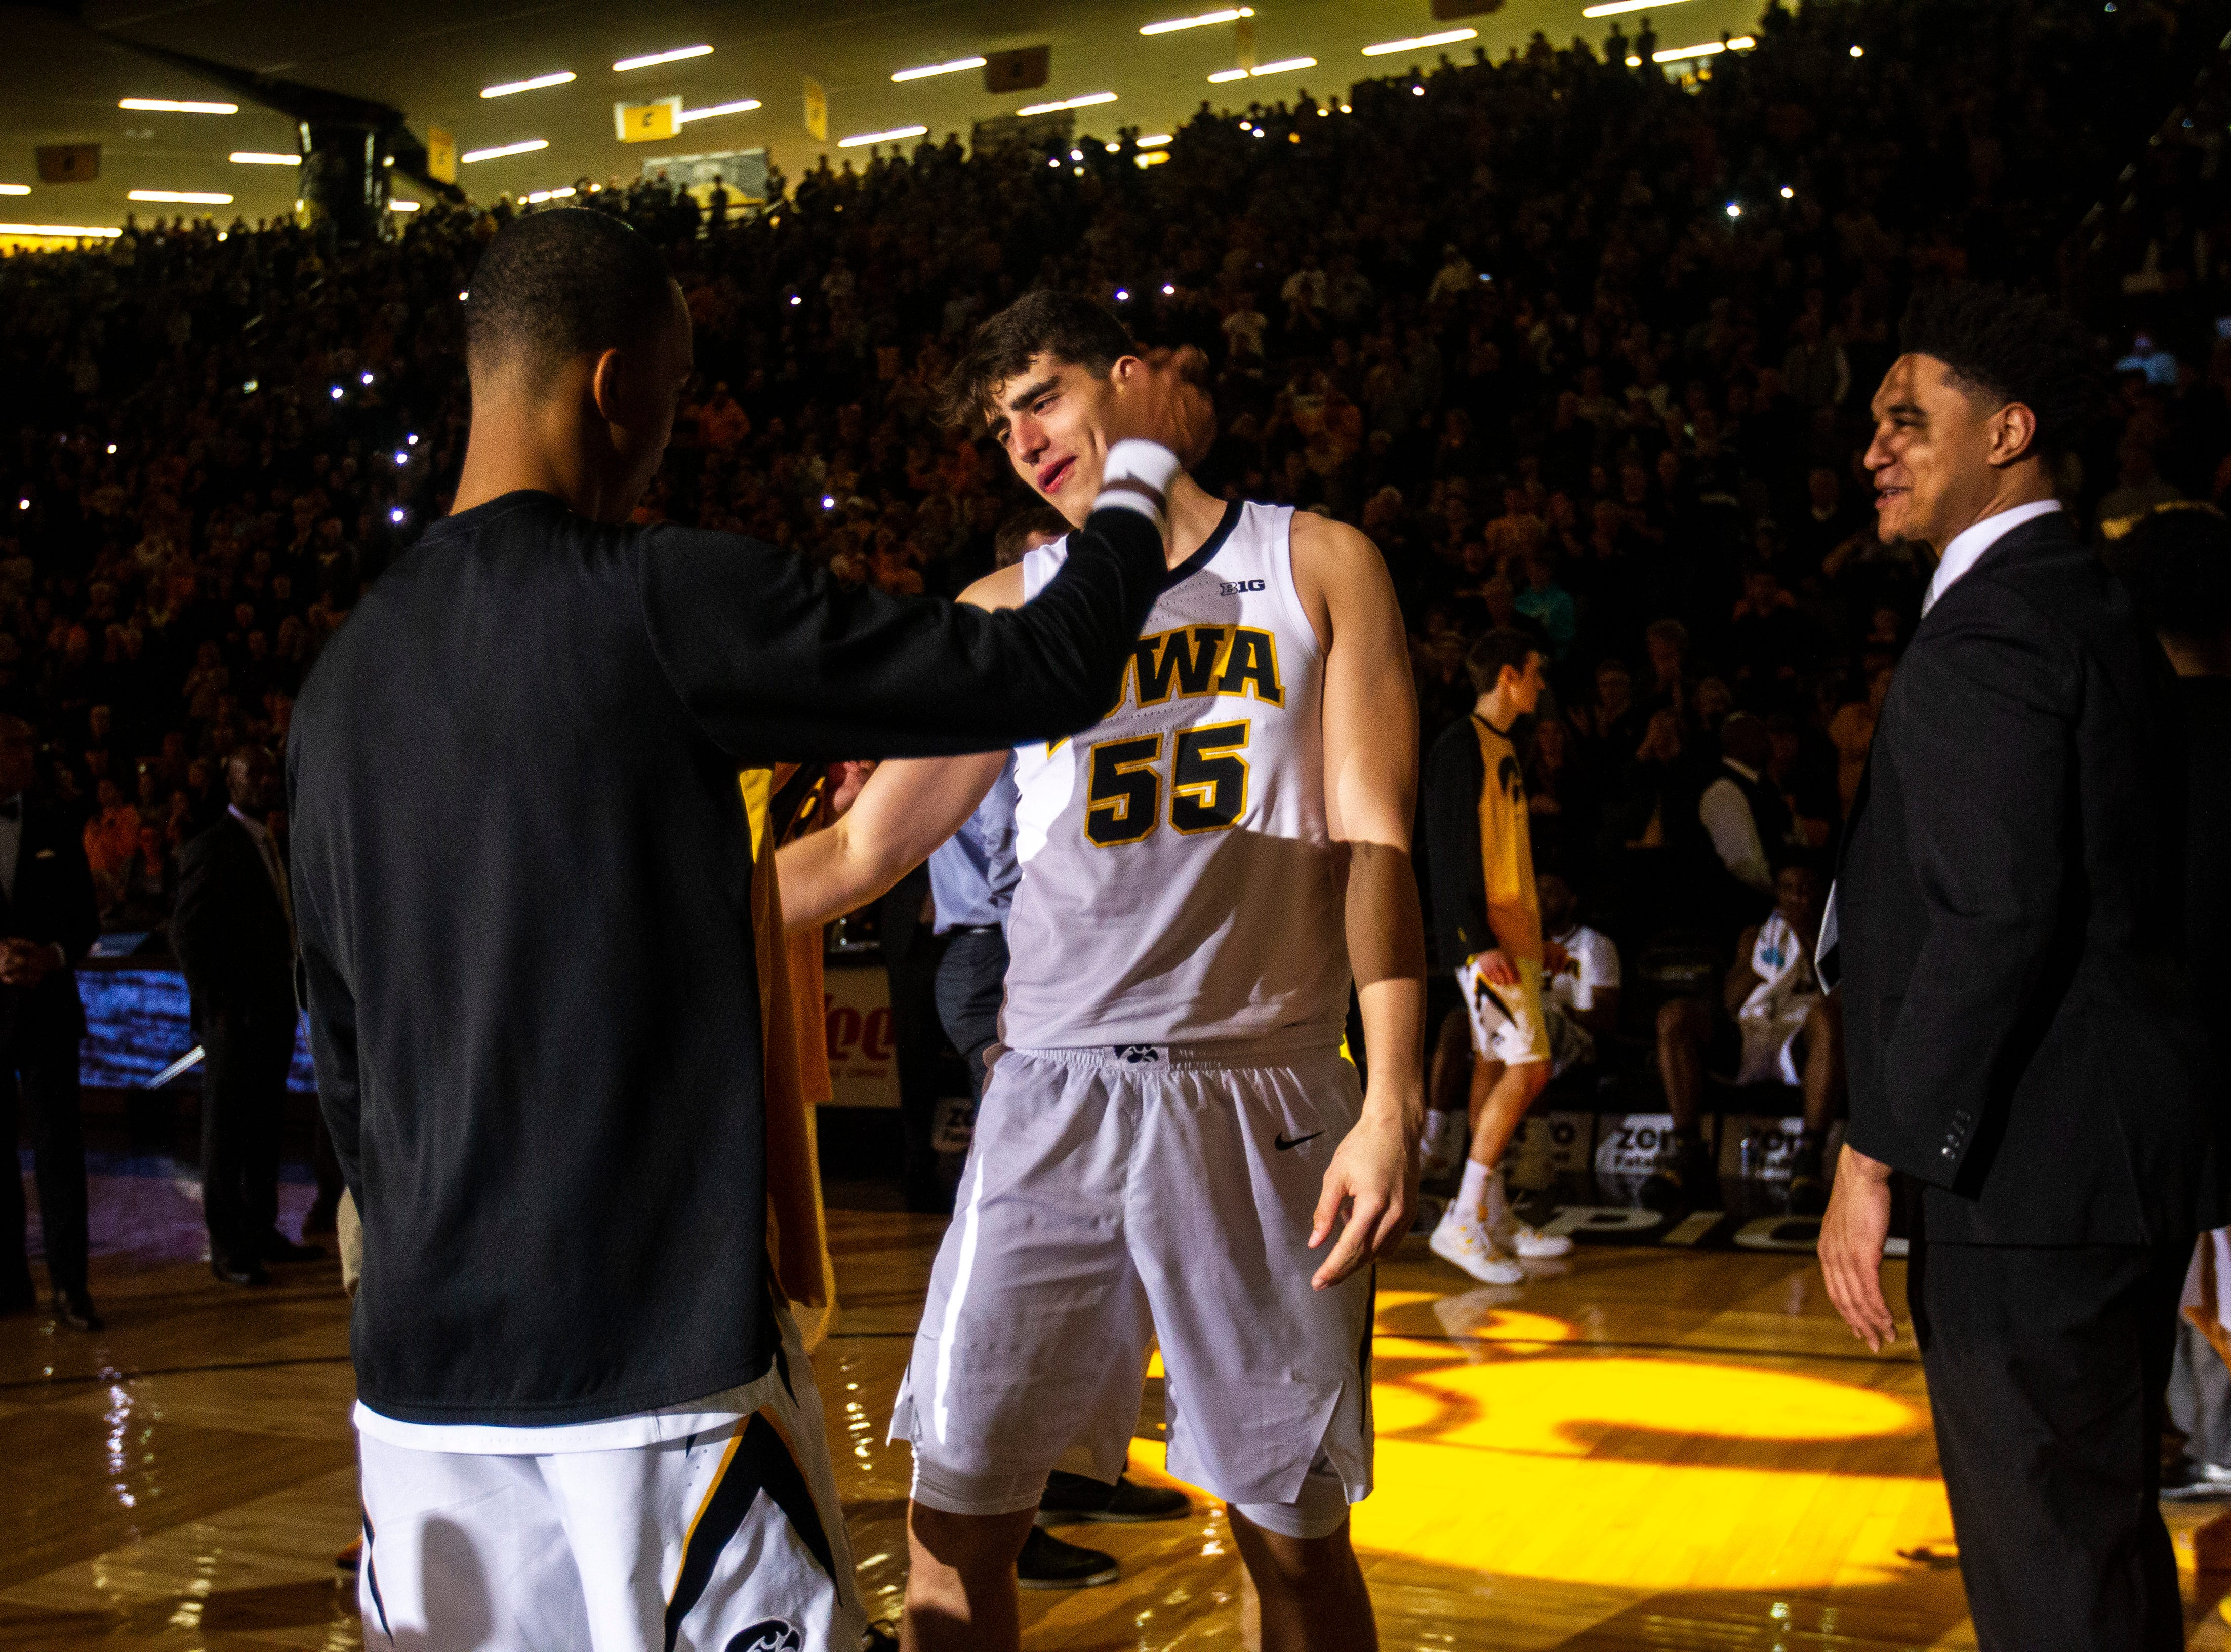 Iowa center Luka Garza (55) high-fives Iowa guard Maishe Dailey while being introduced during a NCAA Big Ten Conference men's basketball game on Tuesday, Feb. 19, 2019 at Carver-Hawkeye Arena in Iowa City, Iowa.